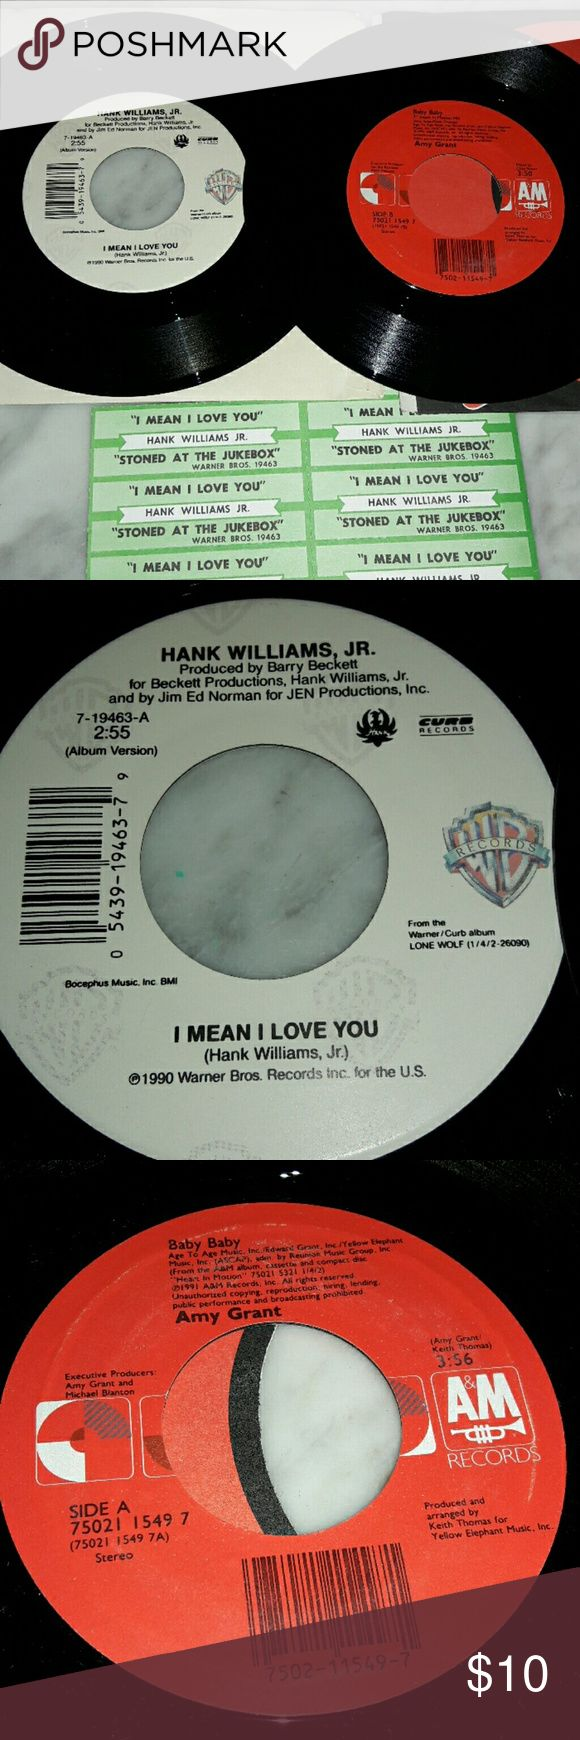 Collectable Hank WilliamsJr. & Amy Grant 45's AMY GRANT: BABY BABY ON BOTH SIDES. HANK WILLIAMS JR. STONED AT THE JUKEBOX, I MEAN I LOVE YOU. Other